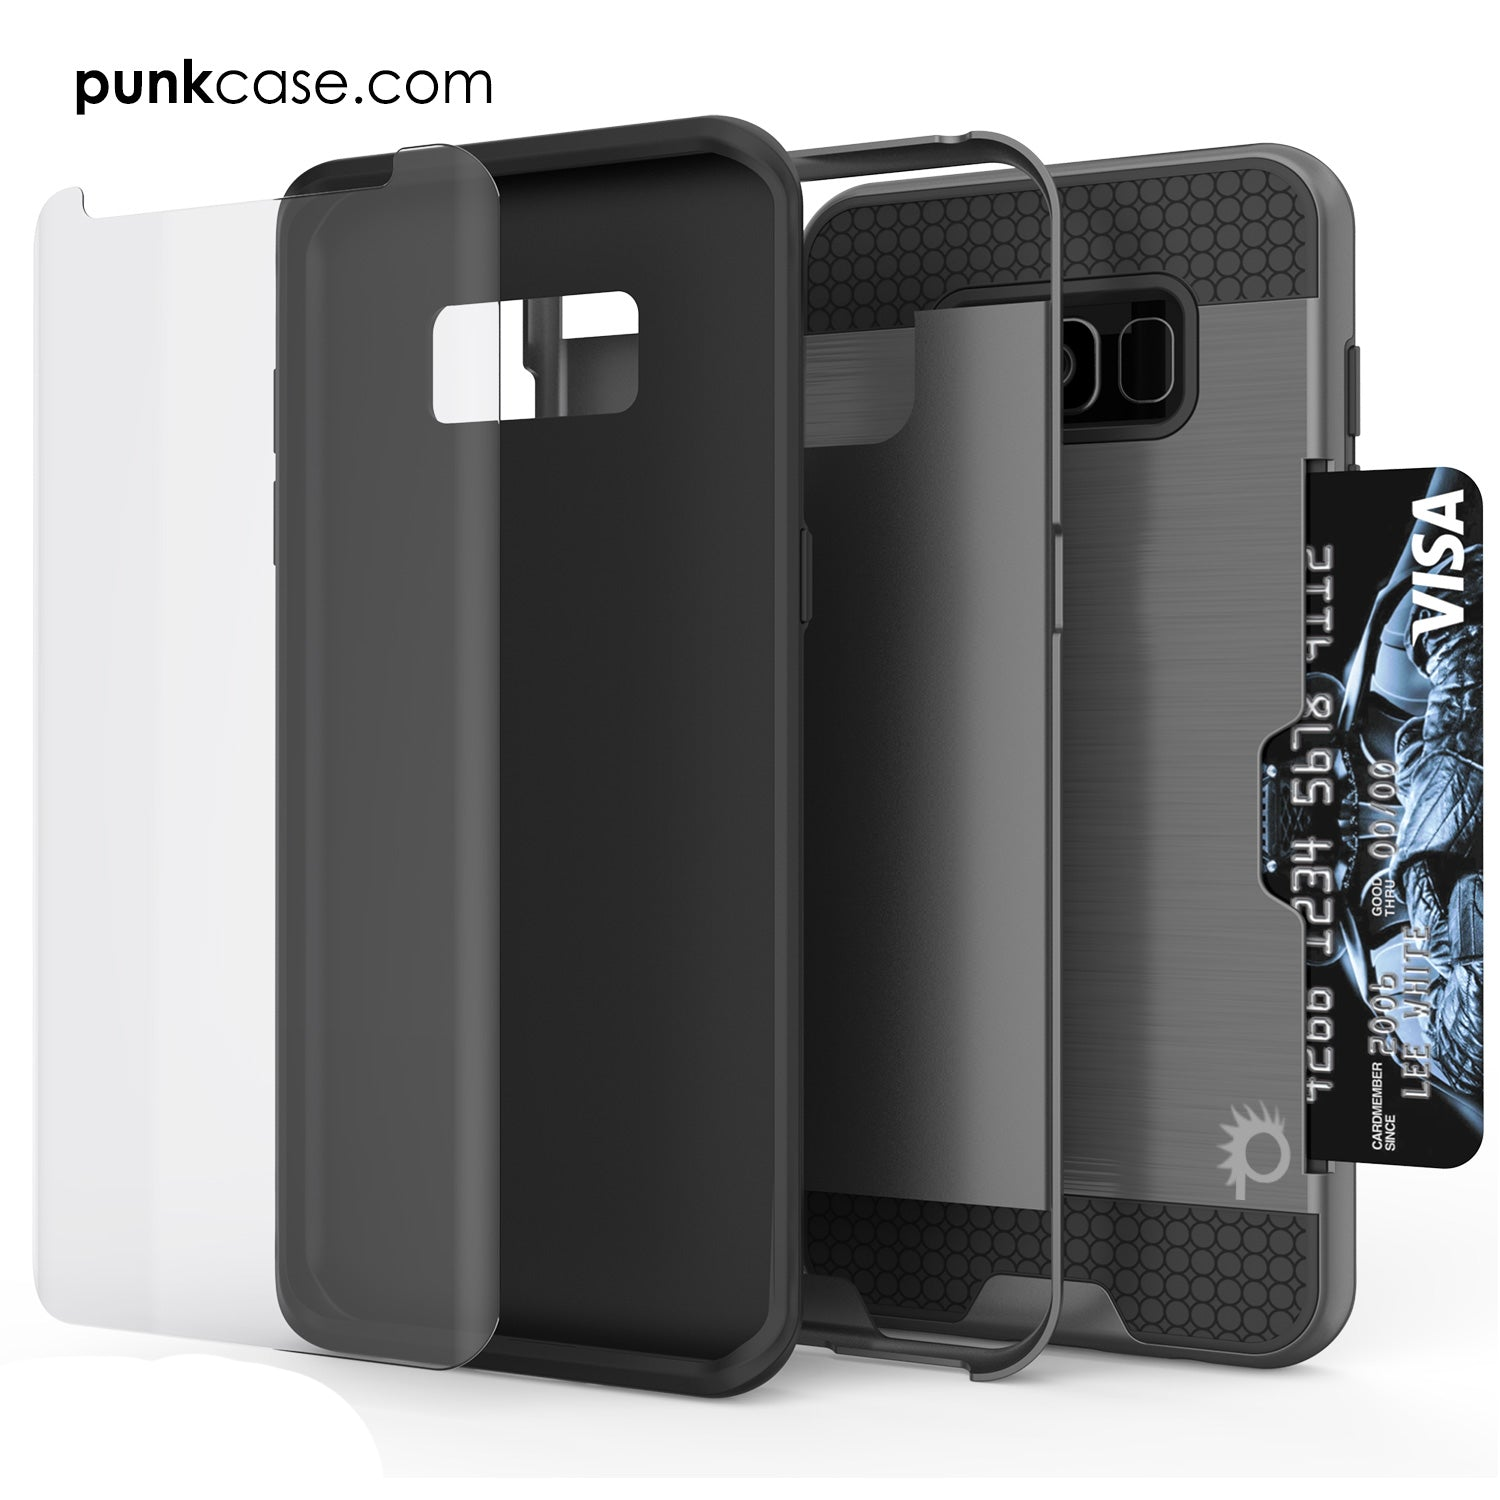 Galaxy S8 Plus Case, PUNKcase [SLOT Series] [Slim Fit] Dual-Layer Armor Cover w/Integrated Anti-Shock System [Grey]